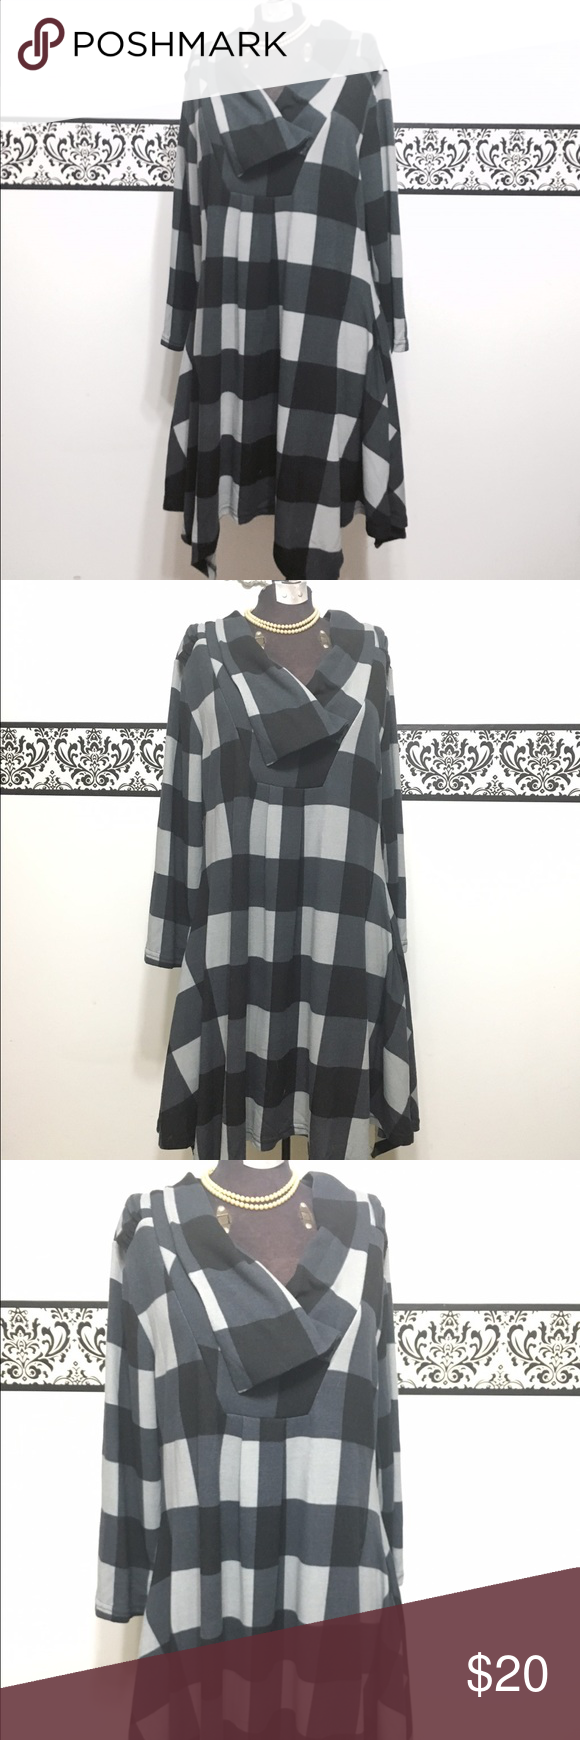 Reborn Cotton Goth Tunic Dress, Size XL This soft cotton tunic by Reborn combines style and comfort. The black and gray shades are perfect to pair with your favorite leggings. The fabric has a ton of strength ch and the handkerchief bottom makes it fun and whims full. Only worn once! Bust 38 inches, waist 36, length 41. Embrace your inner gothic or rockabilly diva! Reborn Dresses Midi